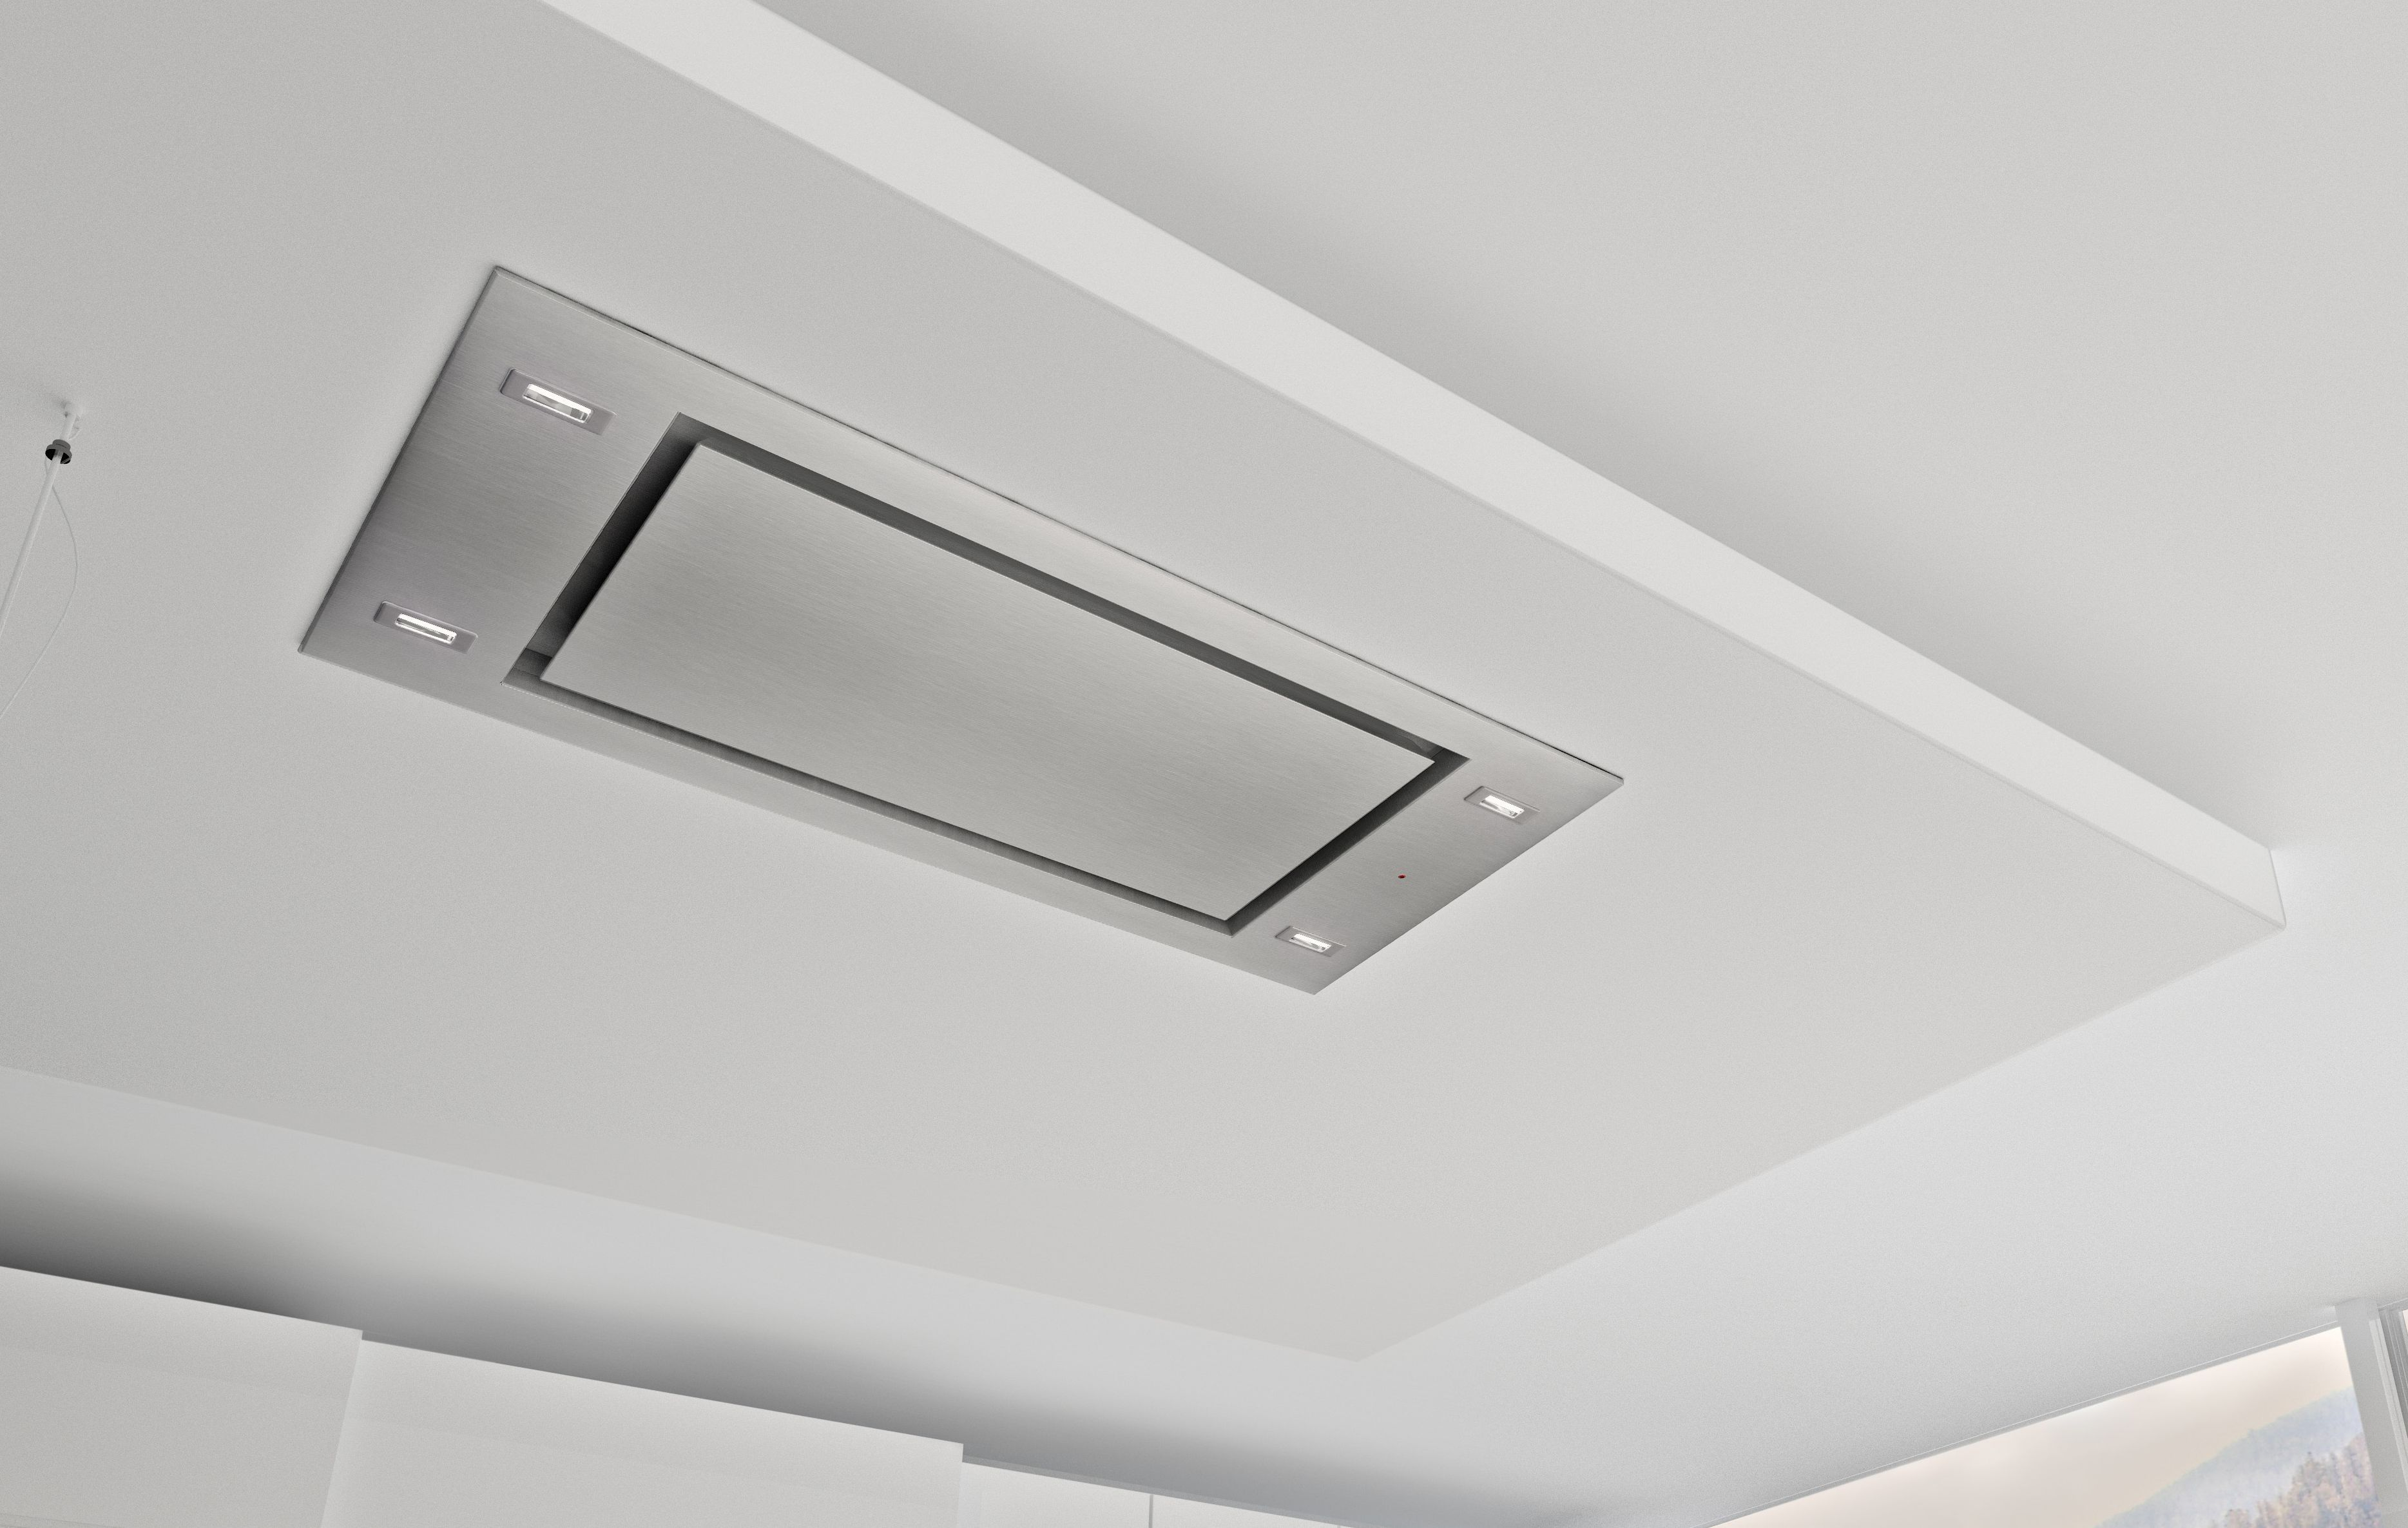 Kitchen Exhaust Fans With Lights Bathroom Vent Fan Bathroom Ventilation Bathroom Ventilation Fan Kitchen exhaust fans ceiling